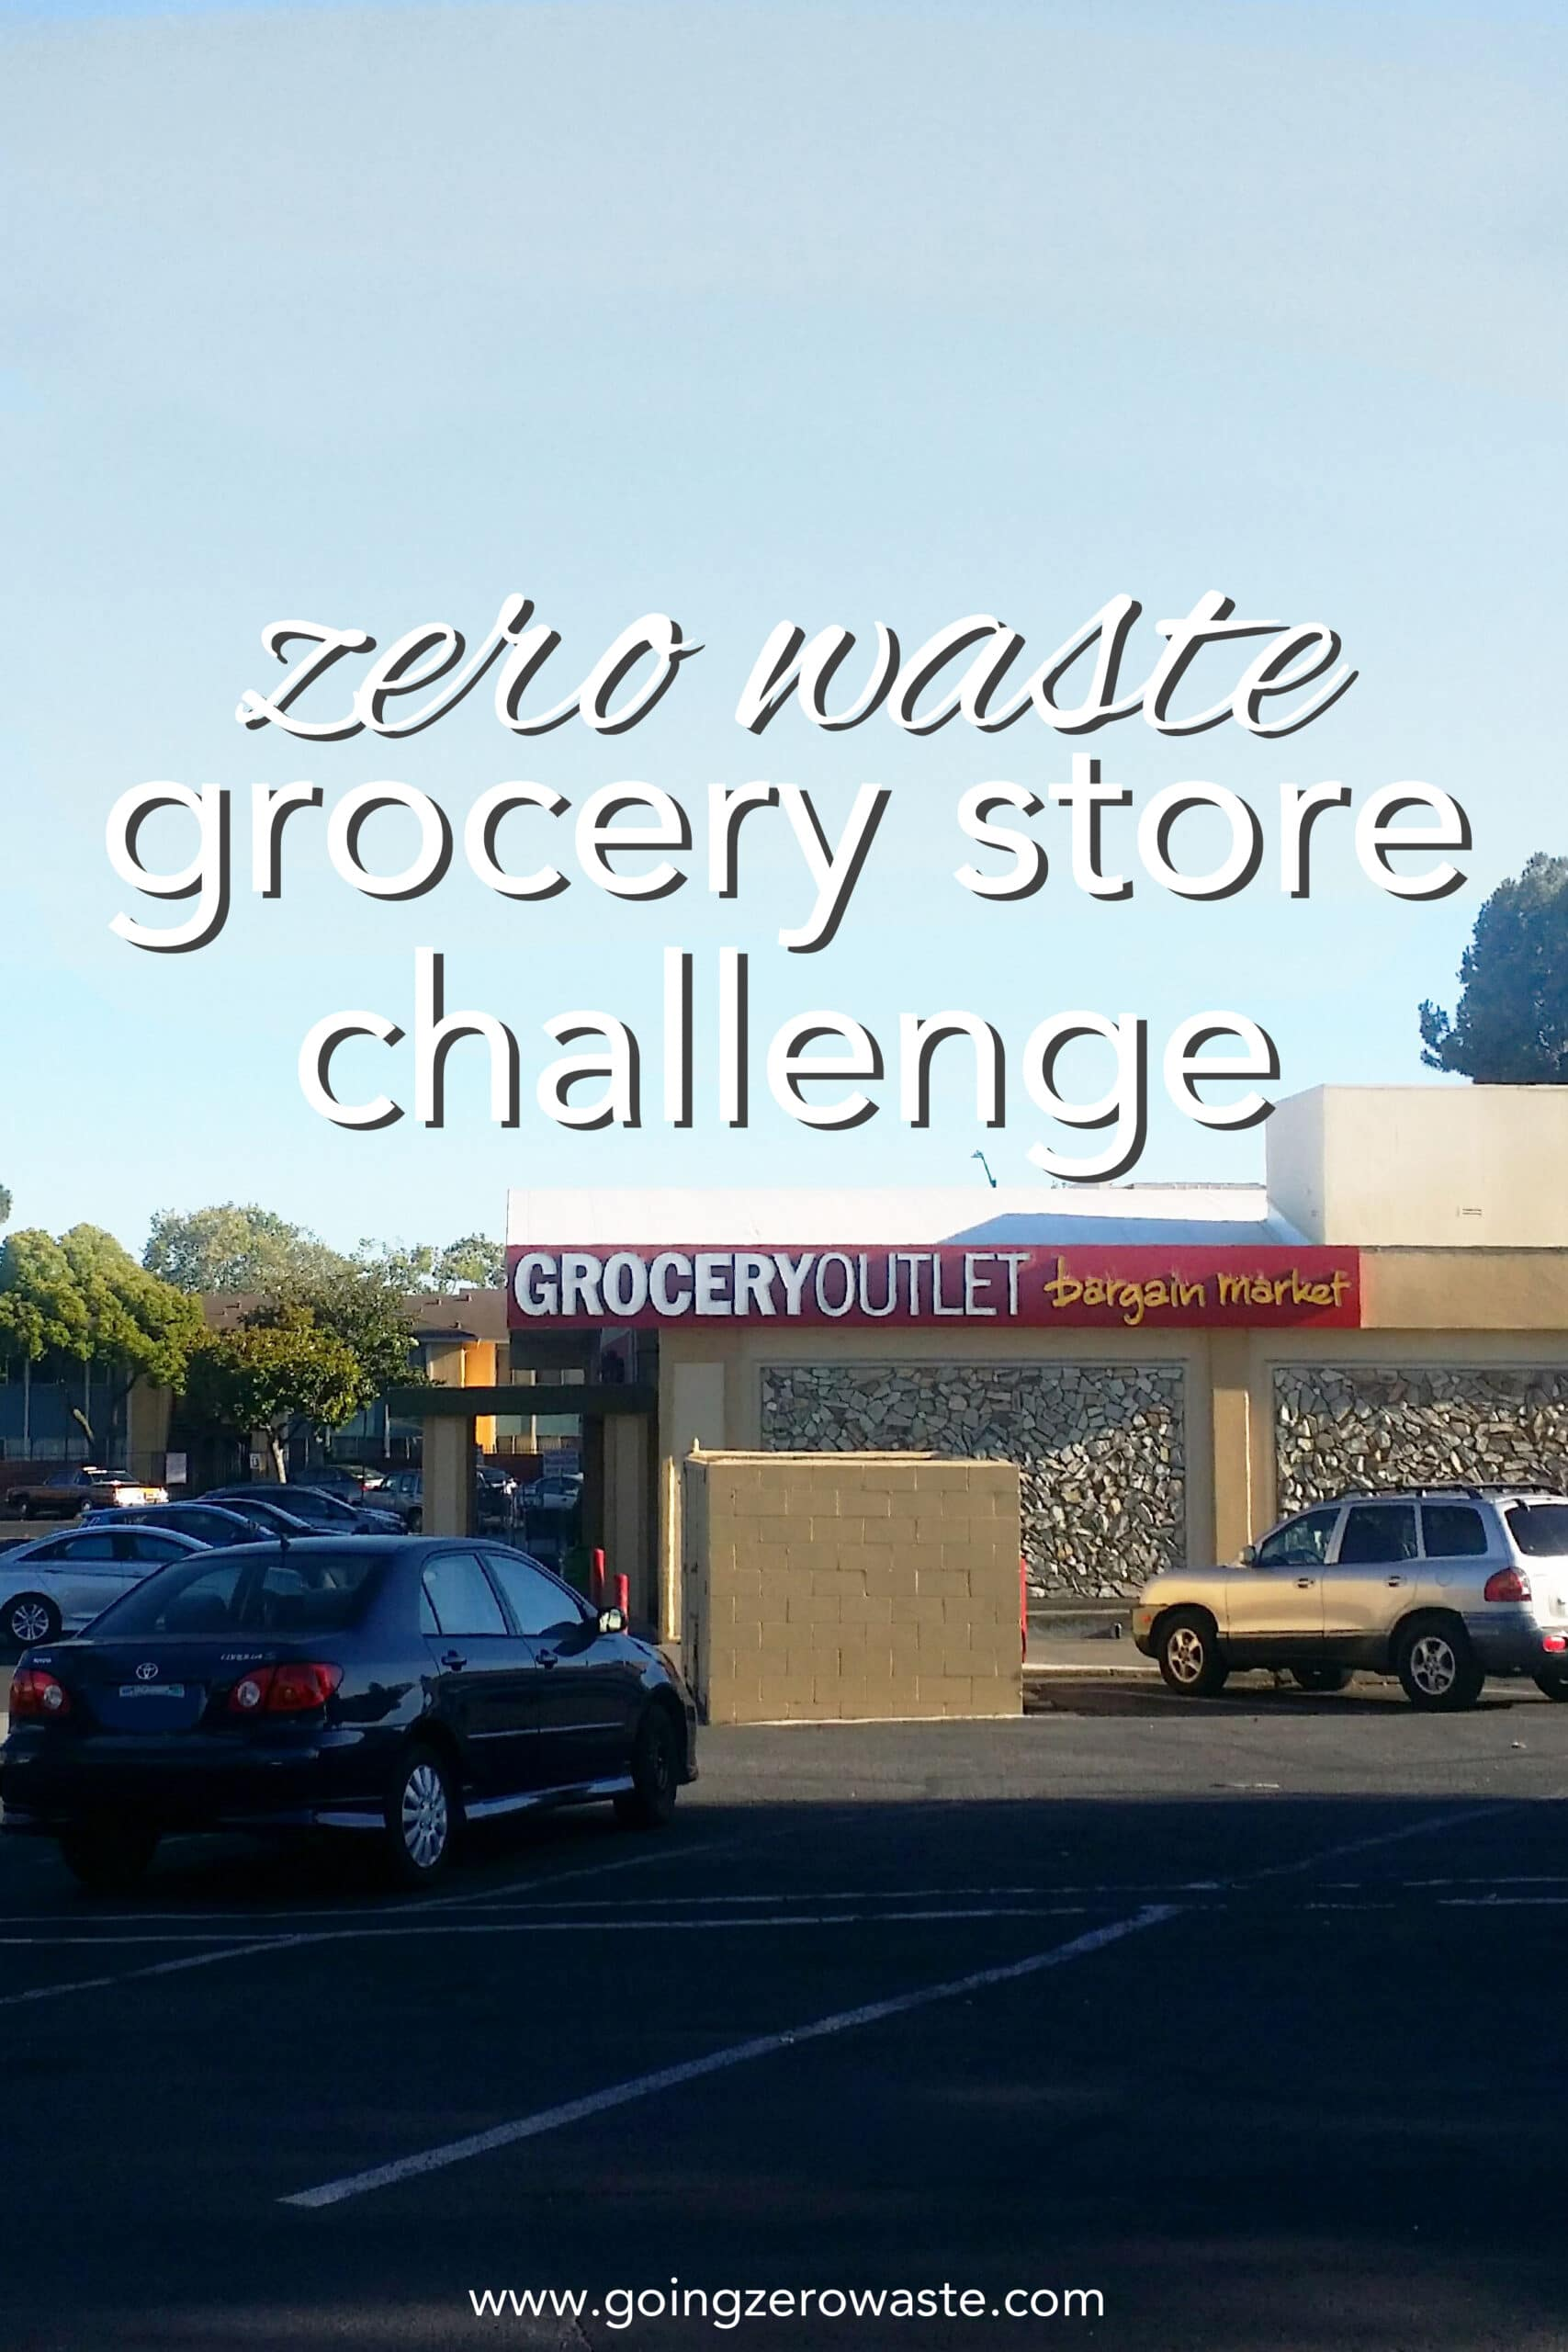 Zero waste grocery store challenge, how to do a zero waste grocery shopping at Grocery Outlet